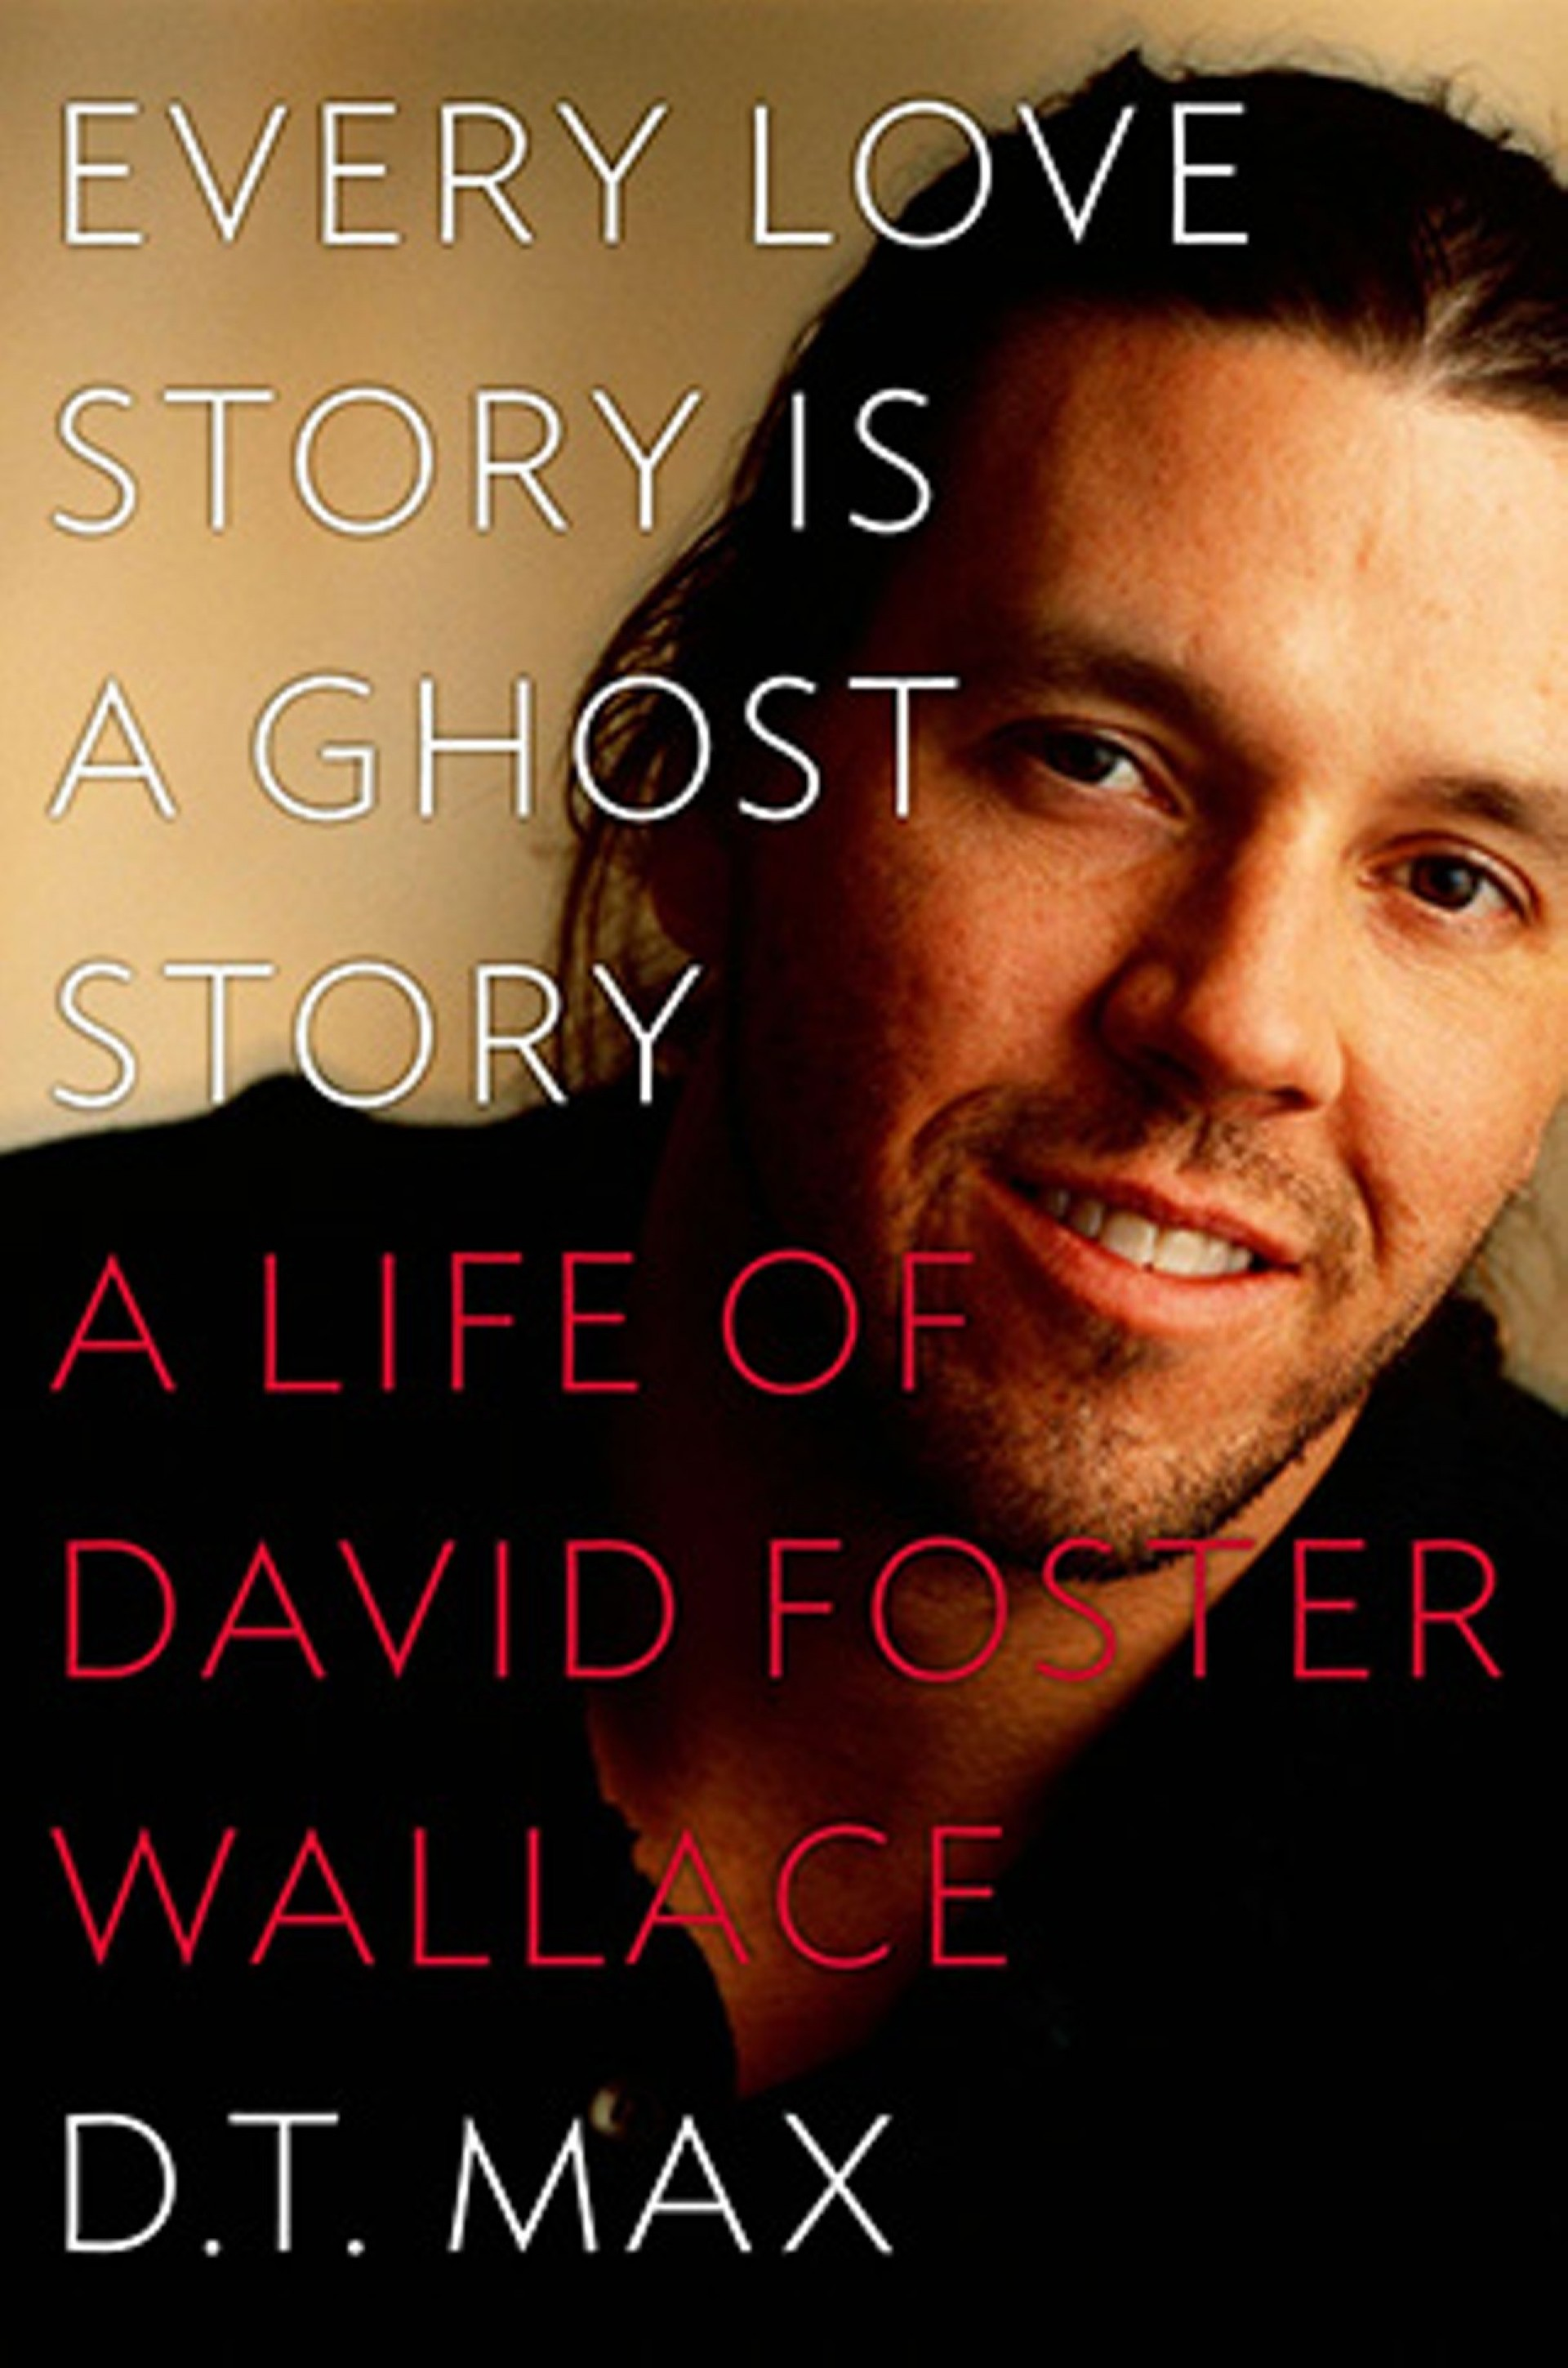 004 David Foster Wallace Essay Everylovestoryisaghoststory Singular On Television Consider Critical Essays This Is Water 1920